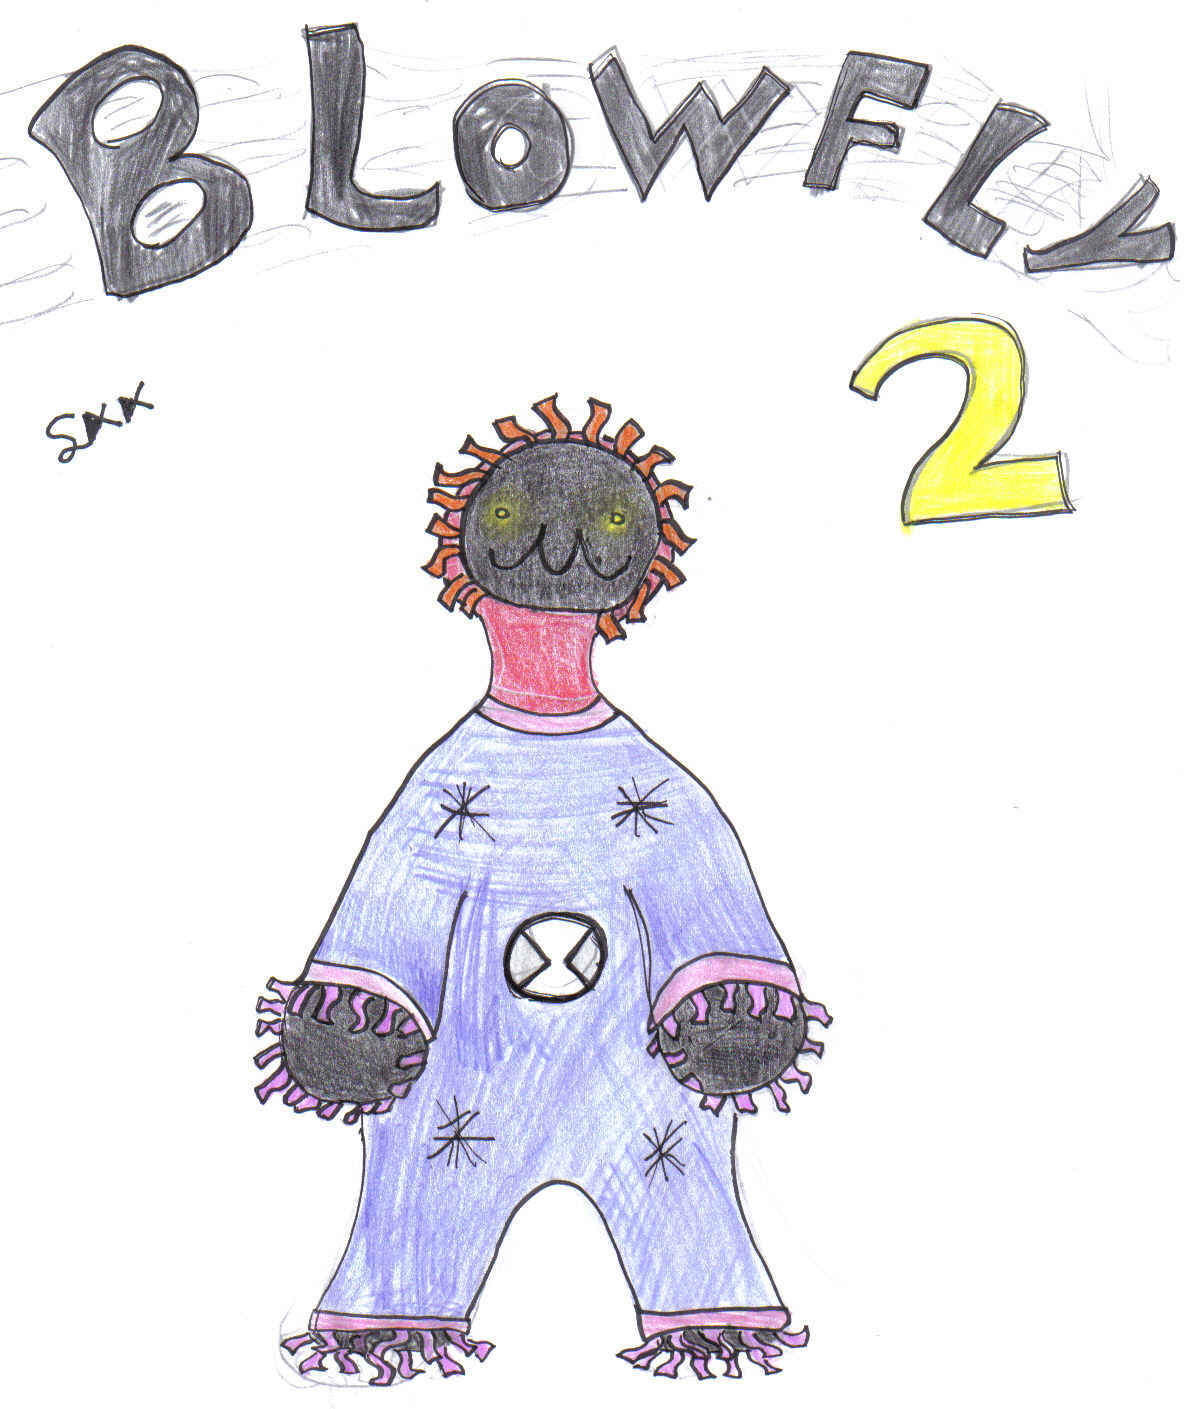 Blowfly by Fourarms